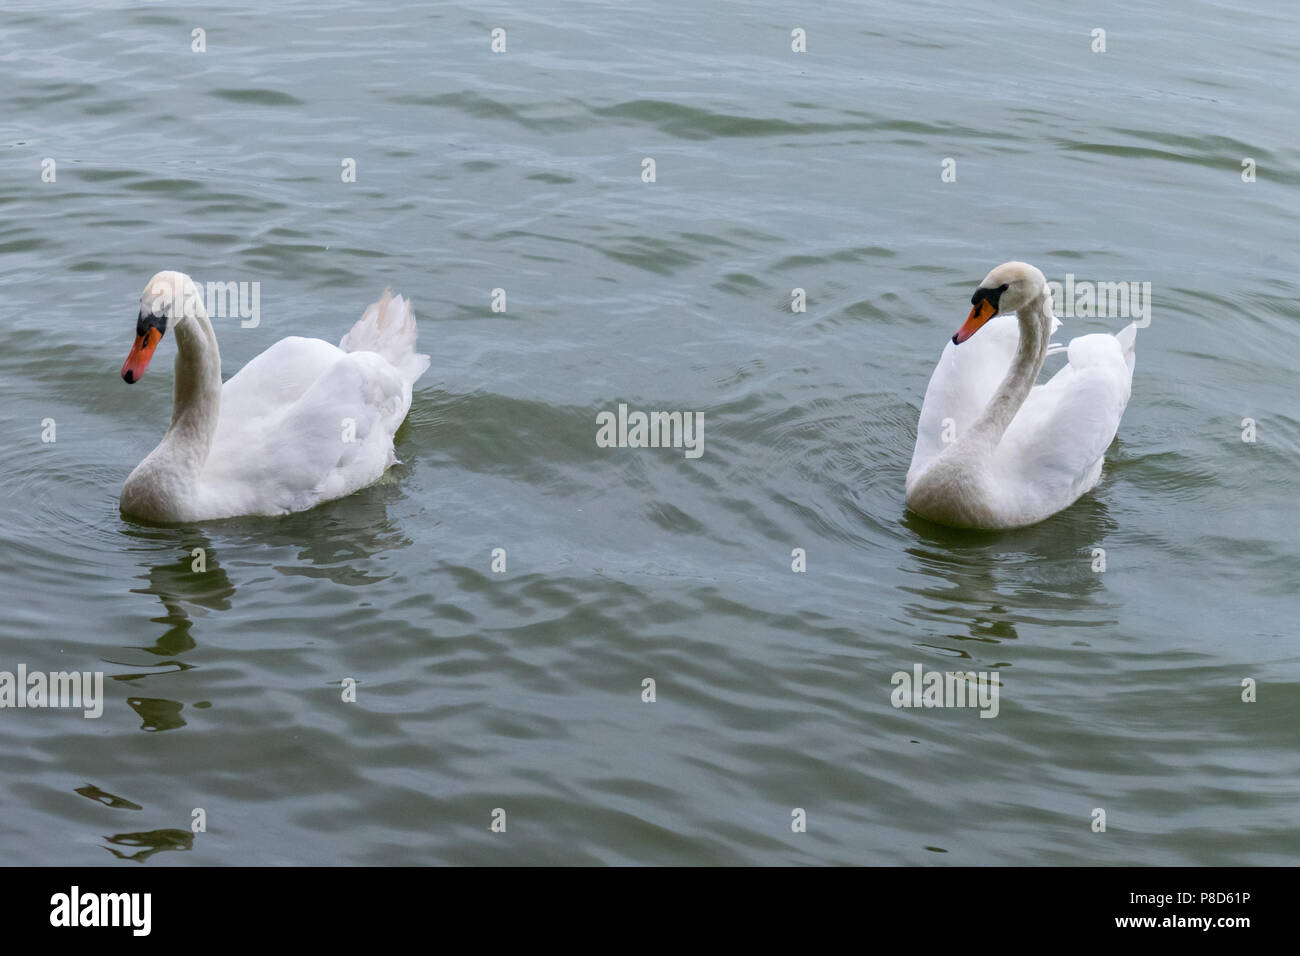 Proud white swans with orange beaks swiftly swim across the pond . For your design - Stock Image